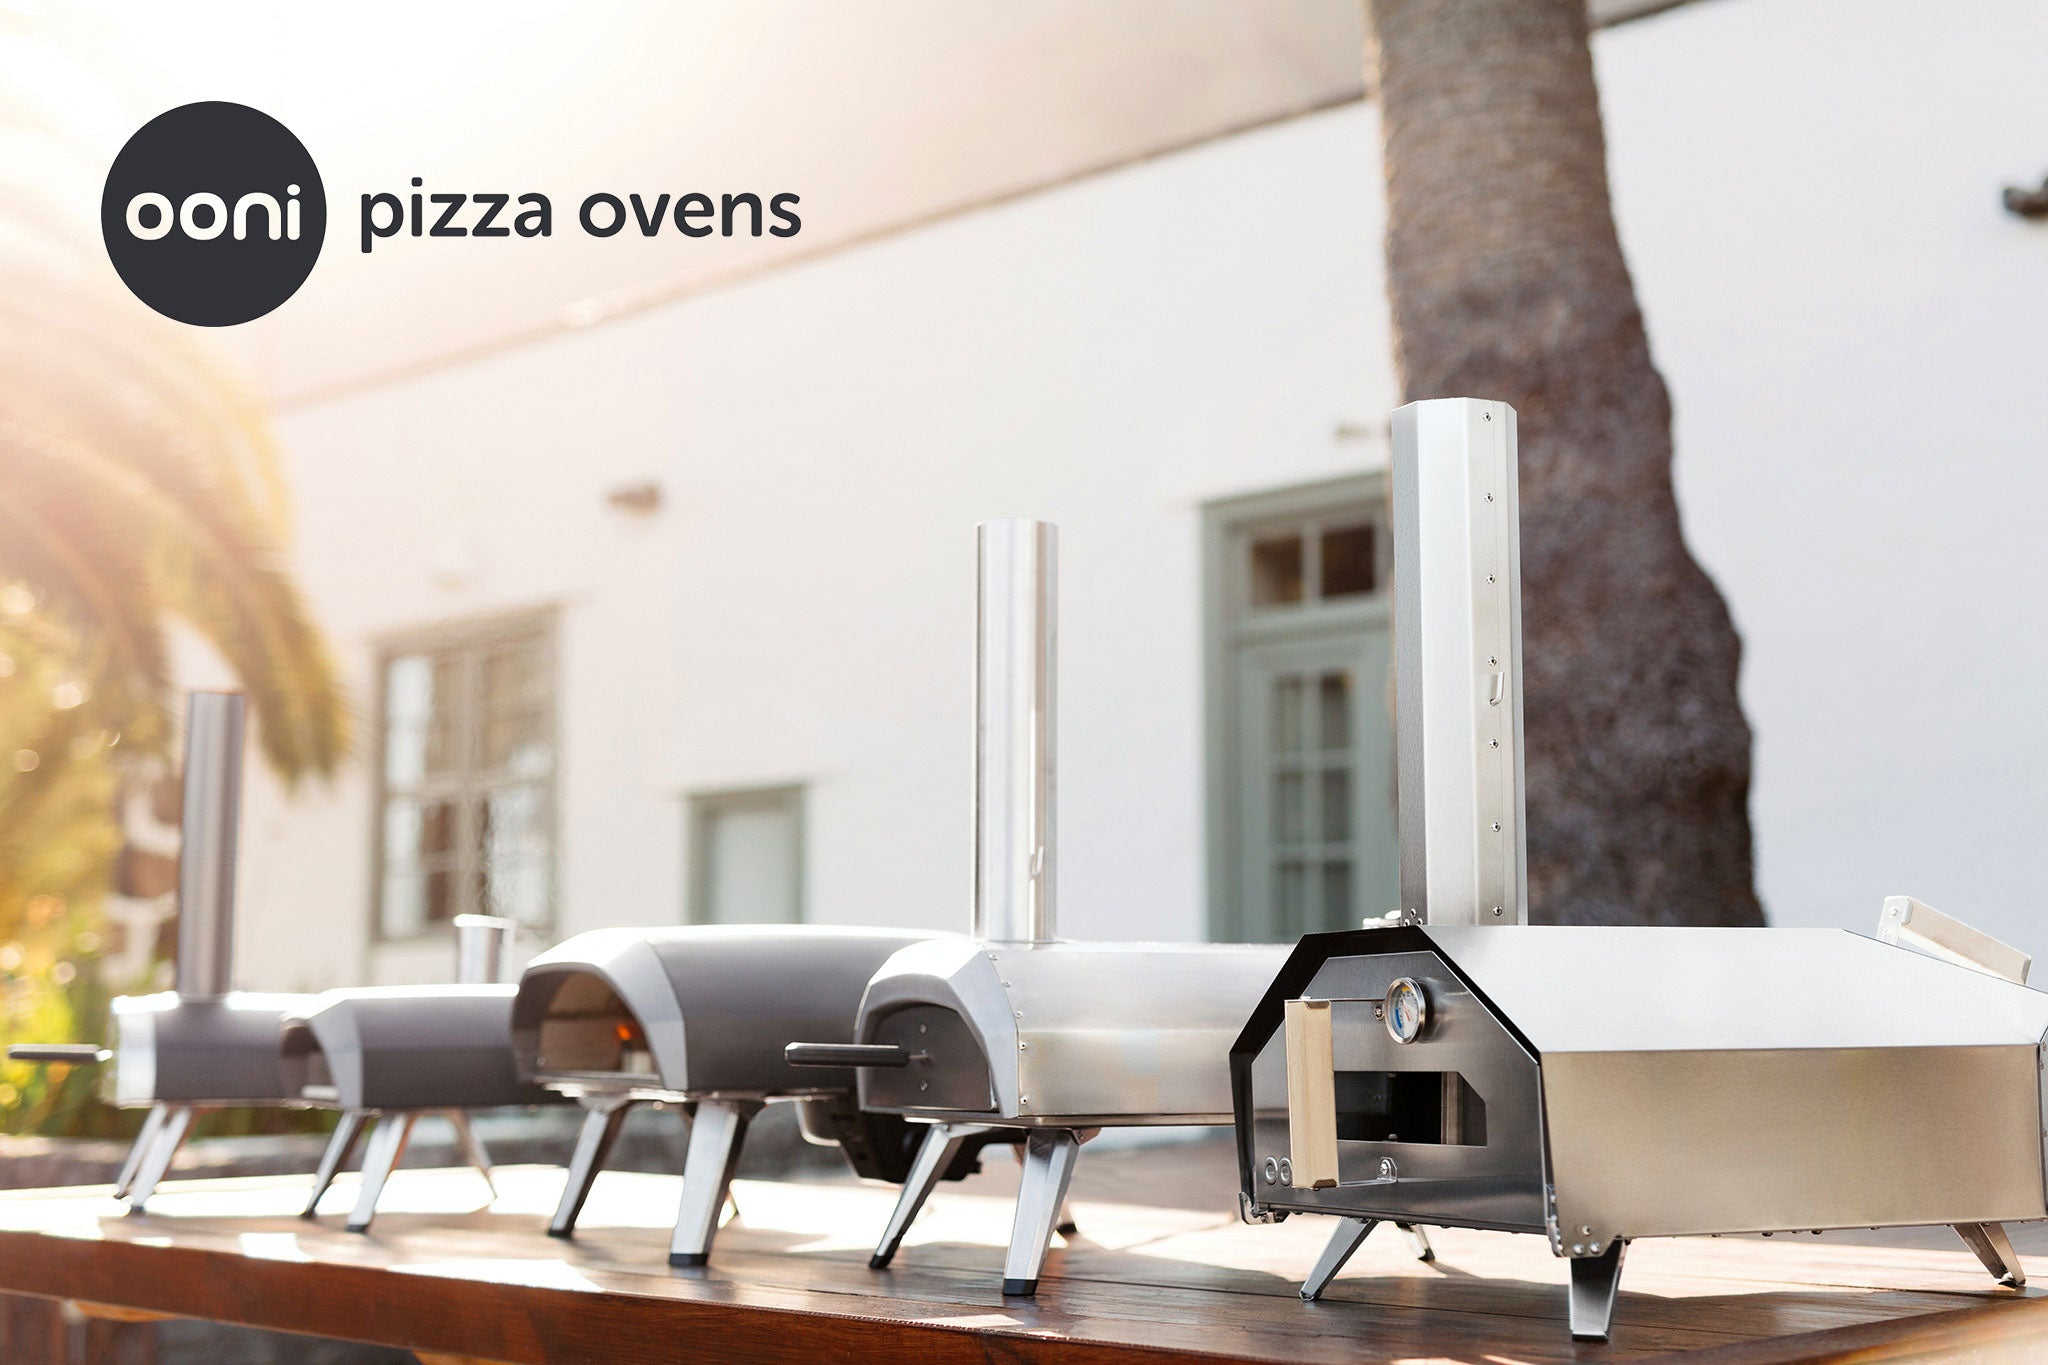 Ovensi Videos Porno ooni pizza ovens | portable pizza ovens | ooni usa